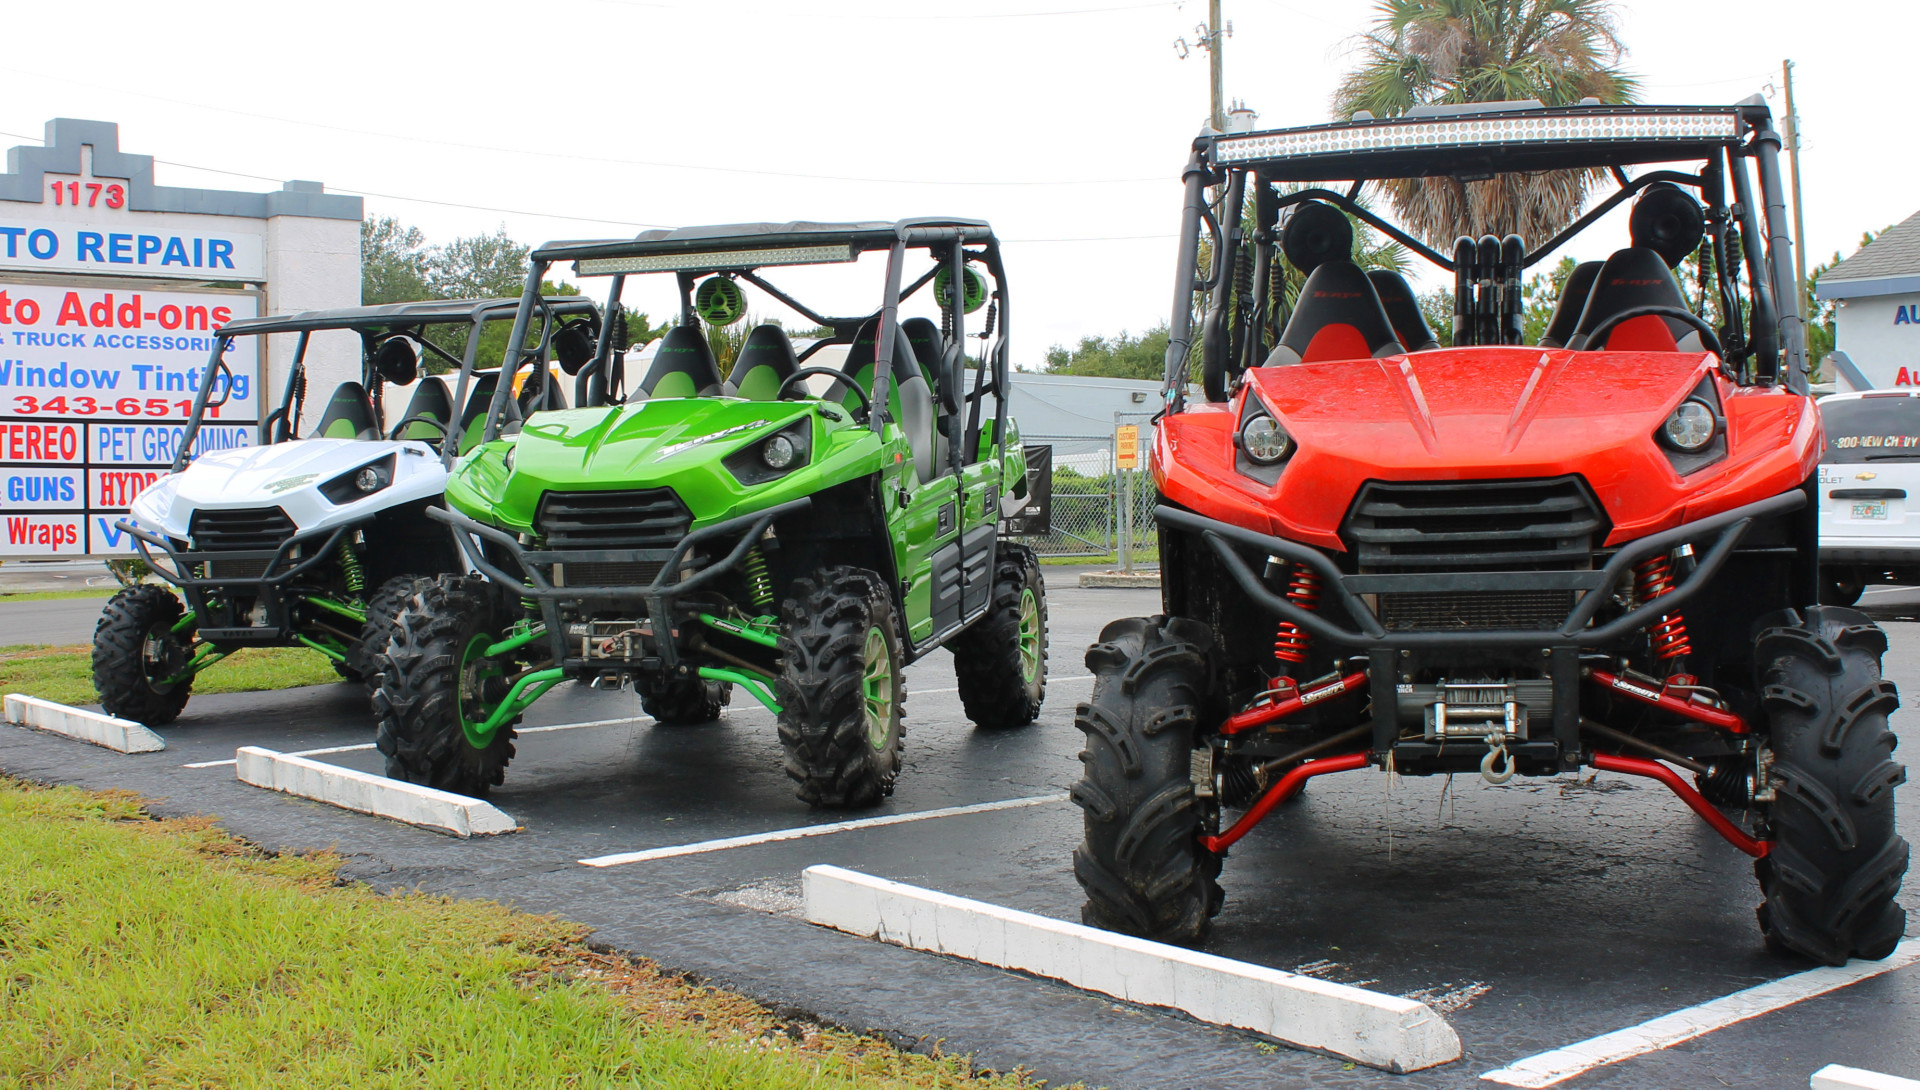 OUTSIDERS KUSTOM – ATV & UTV ACCESSORIES